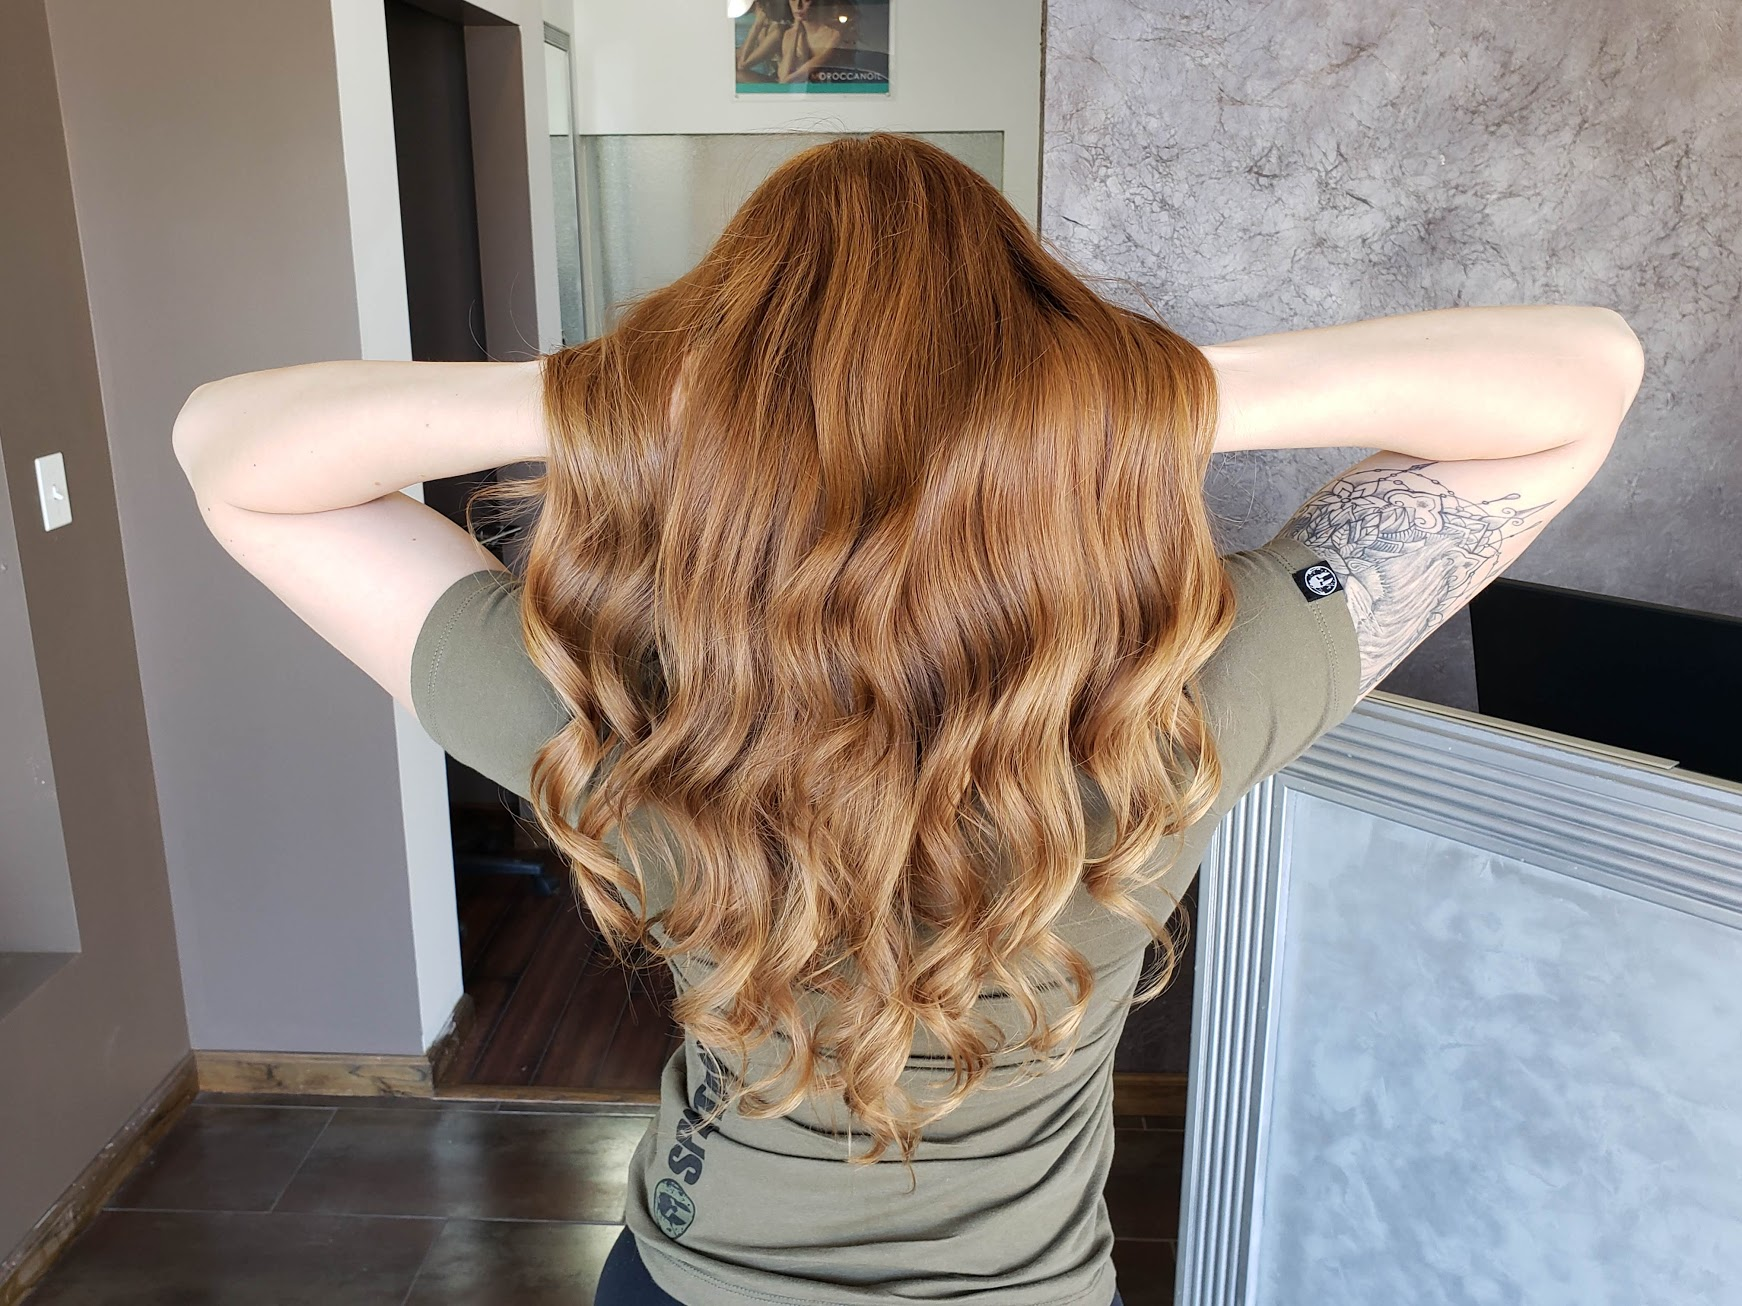 Single Process(Outhgrow or All Over Color) Starting at $100 - This service is perfect for clients who are looking to change their virgen hair color or re-touch their new hair growth. This service does not include applications with lightener (bleach) or highlight touch-ups. Service includes wash, Olaplex Treatment, blow-dry and style.For all color services, charges are estimate at $100 for the first hour and $60 for every additional hour. Price will vary based on the desire look.